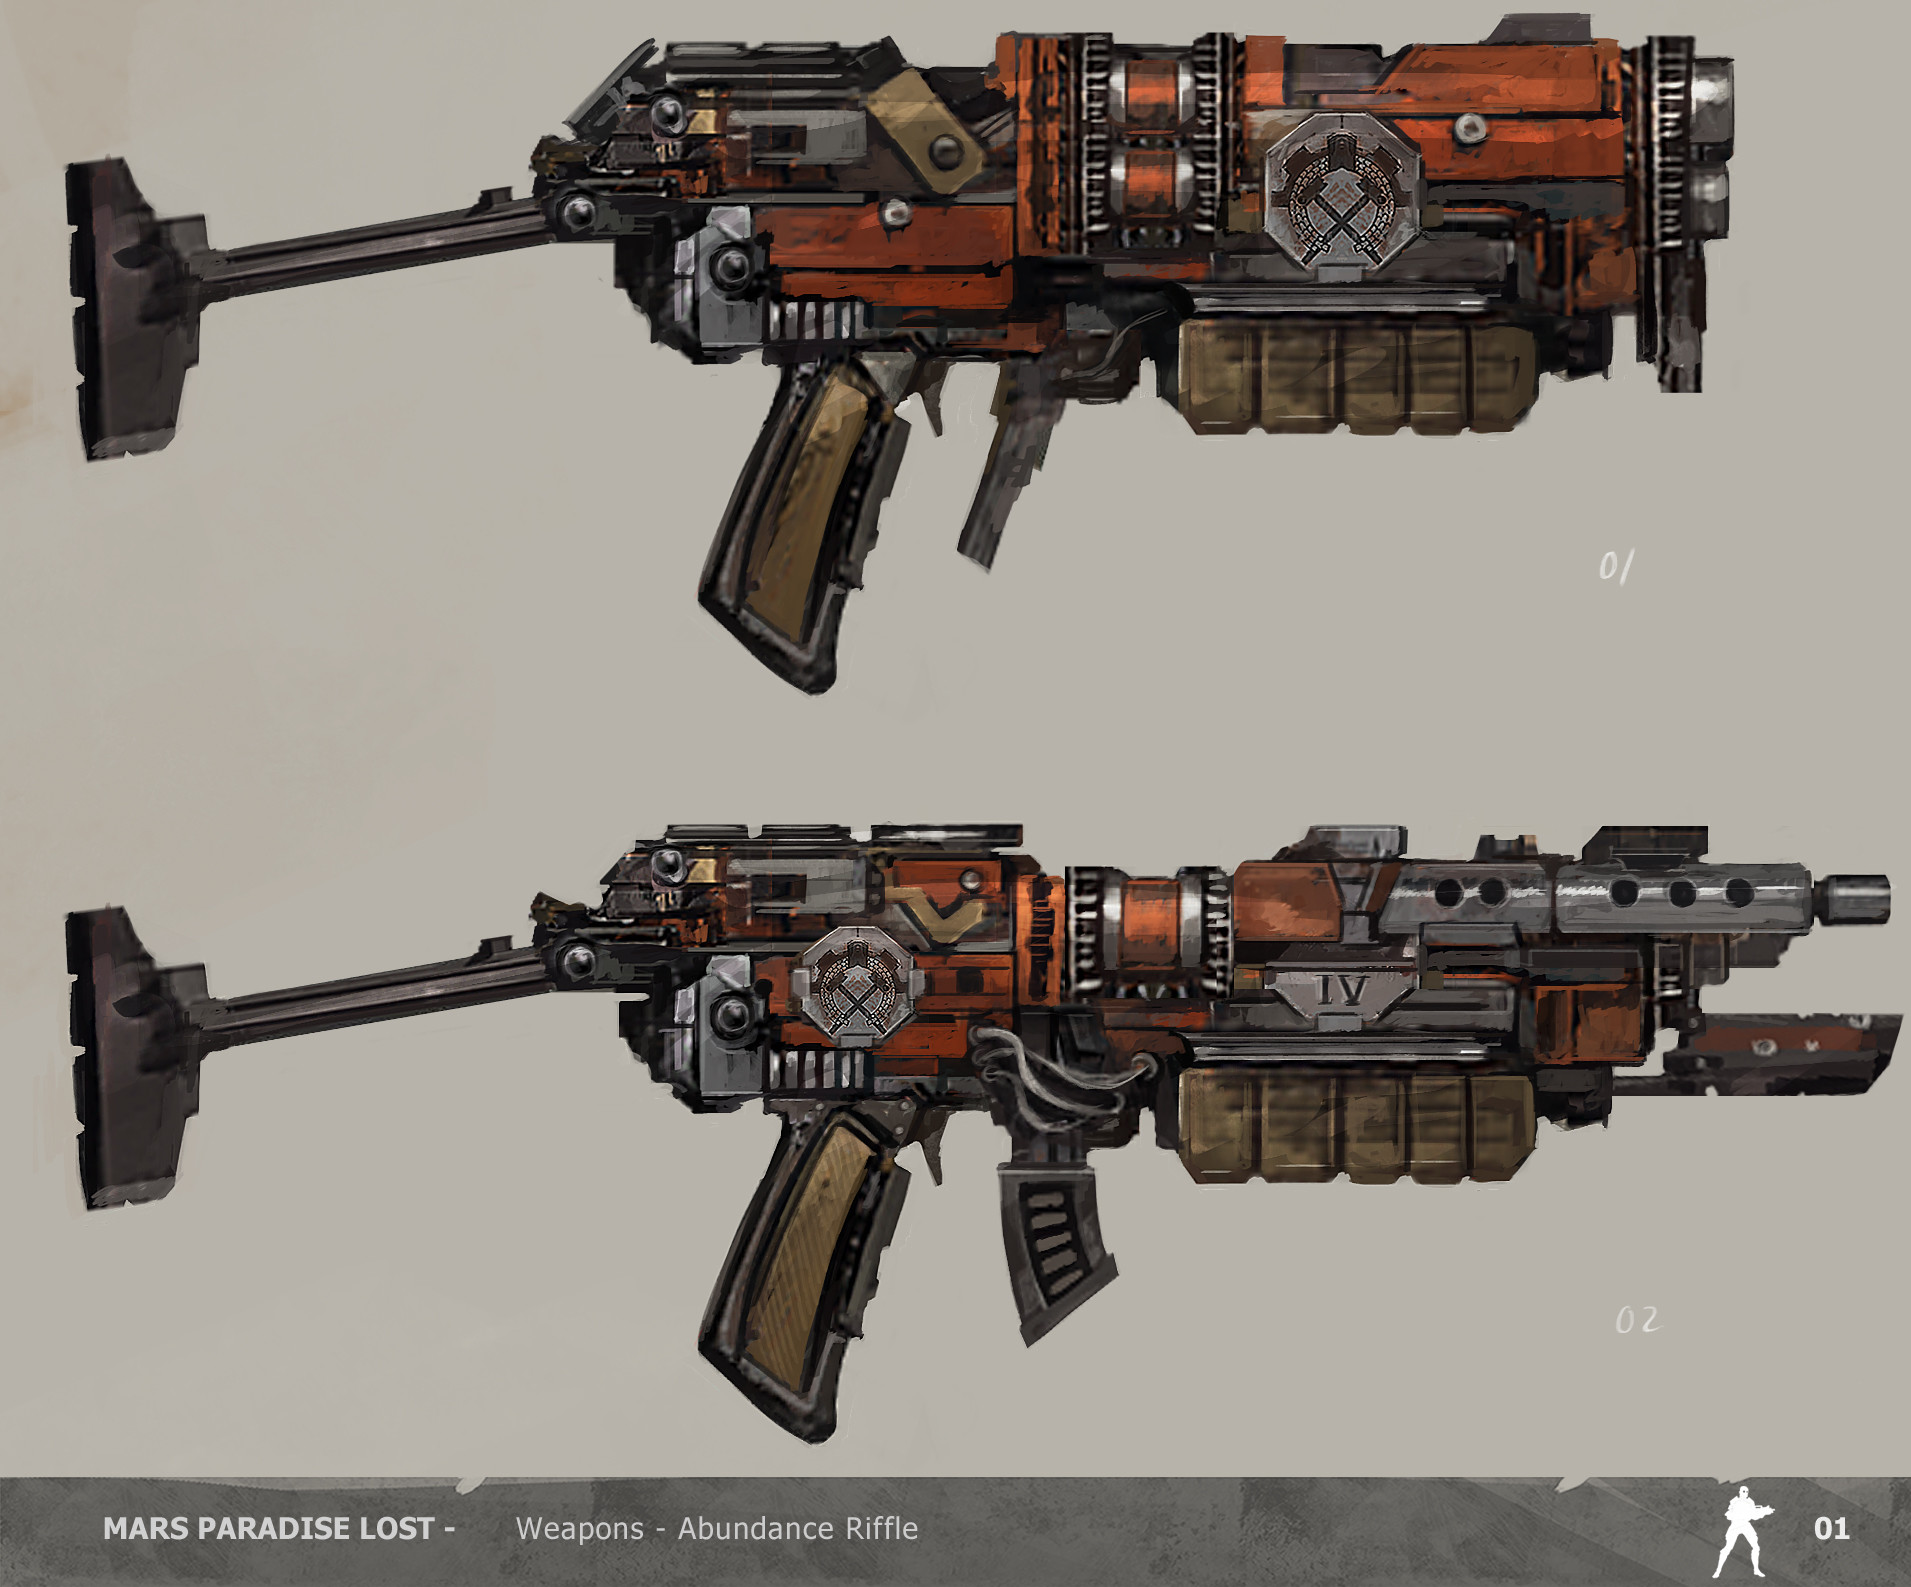 Alexandre chaudret mpl weapon fireweapon research02